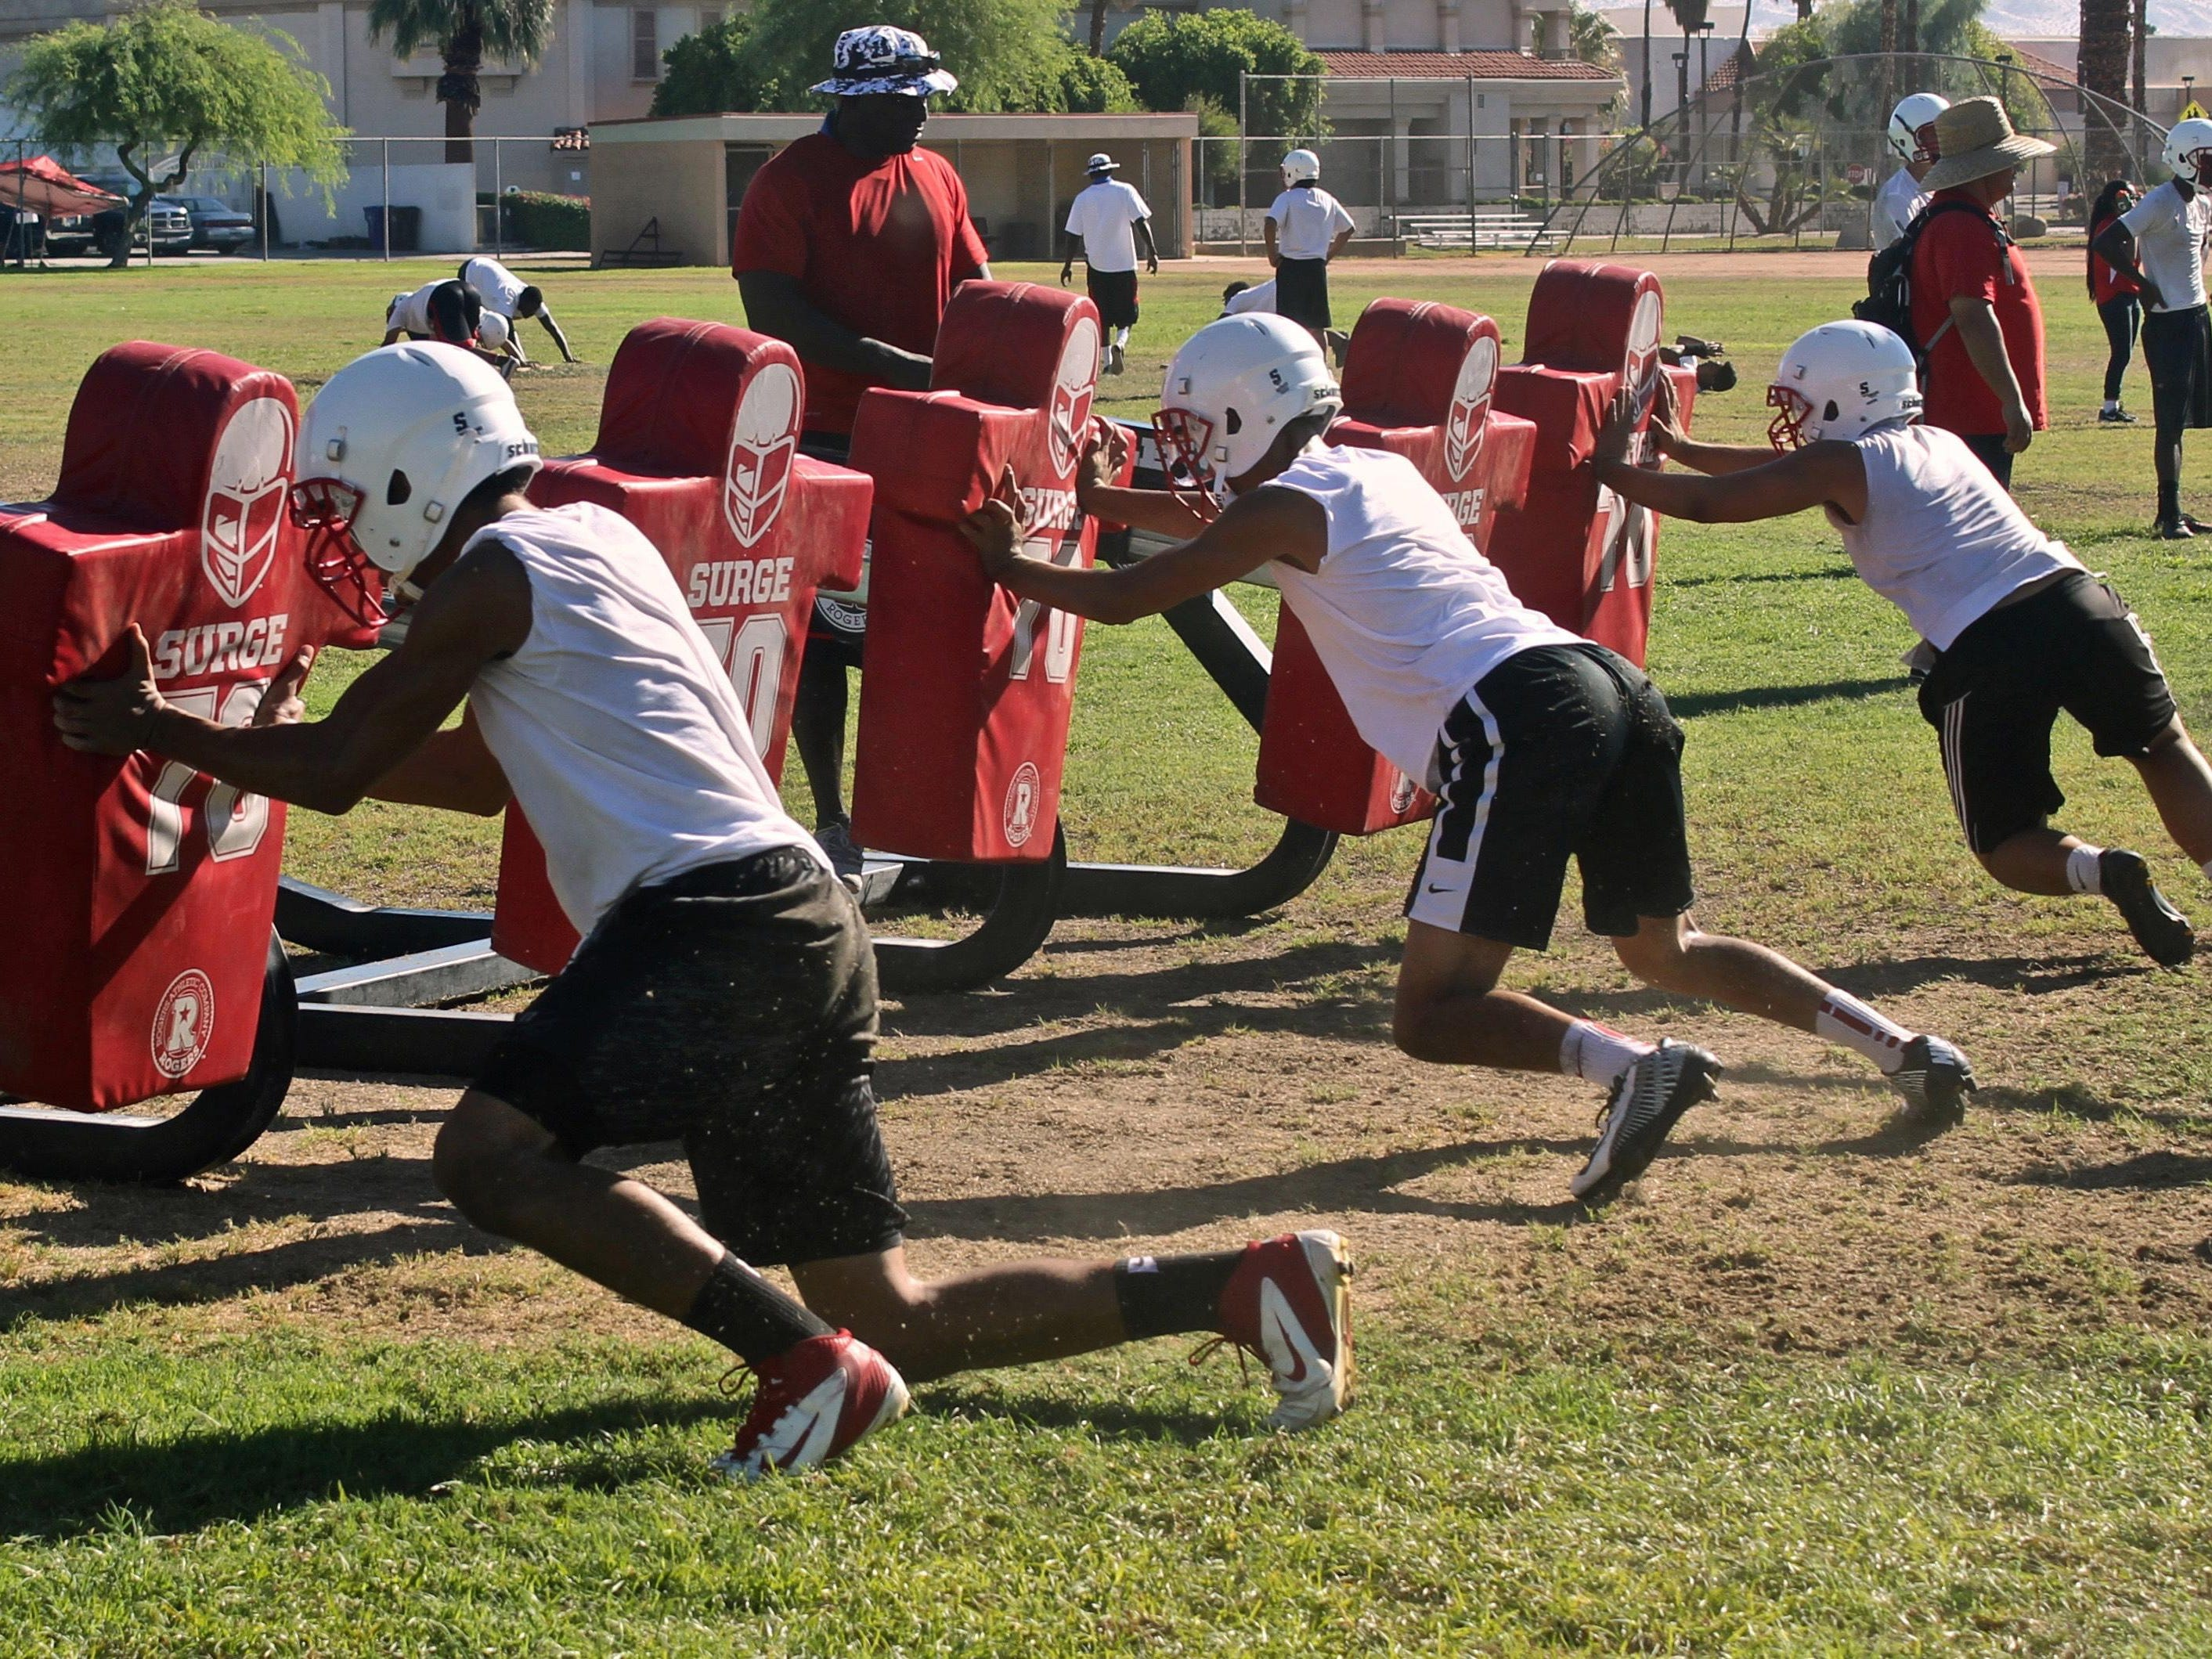 The Indians practice during the squad's third mandatory training session on Tuesday. The team is focused to make another CIF title run this season.